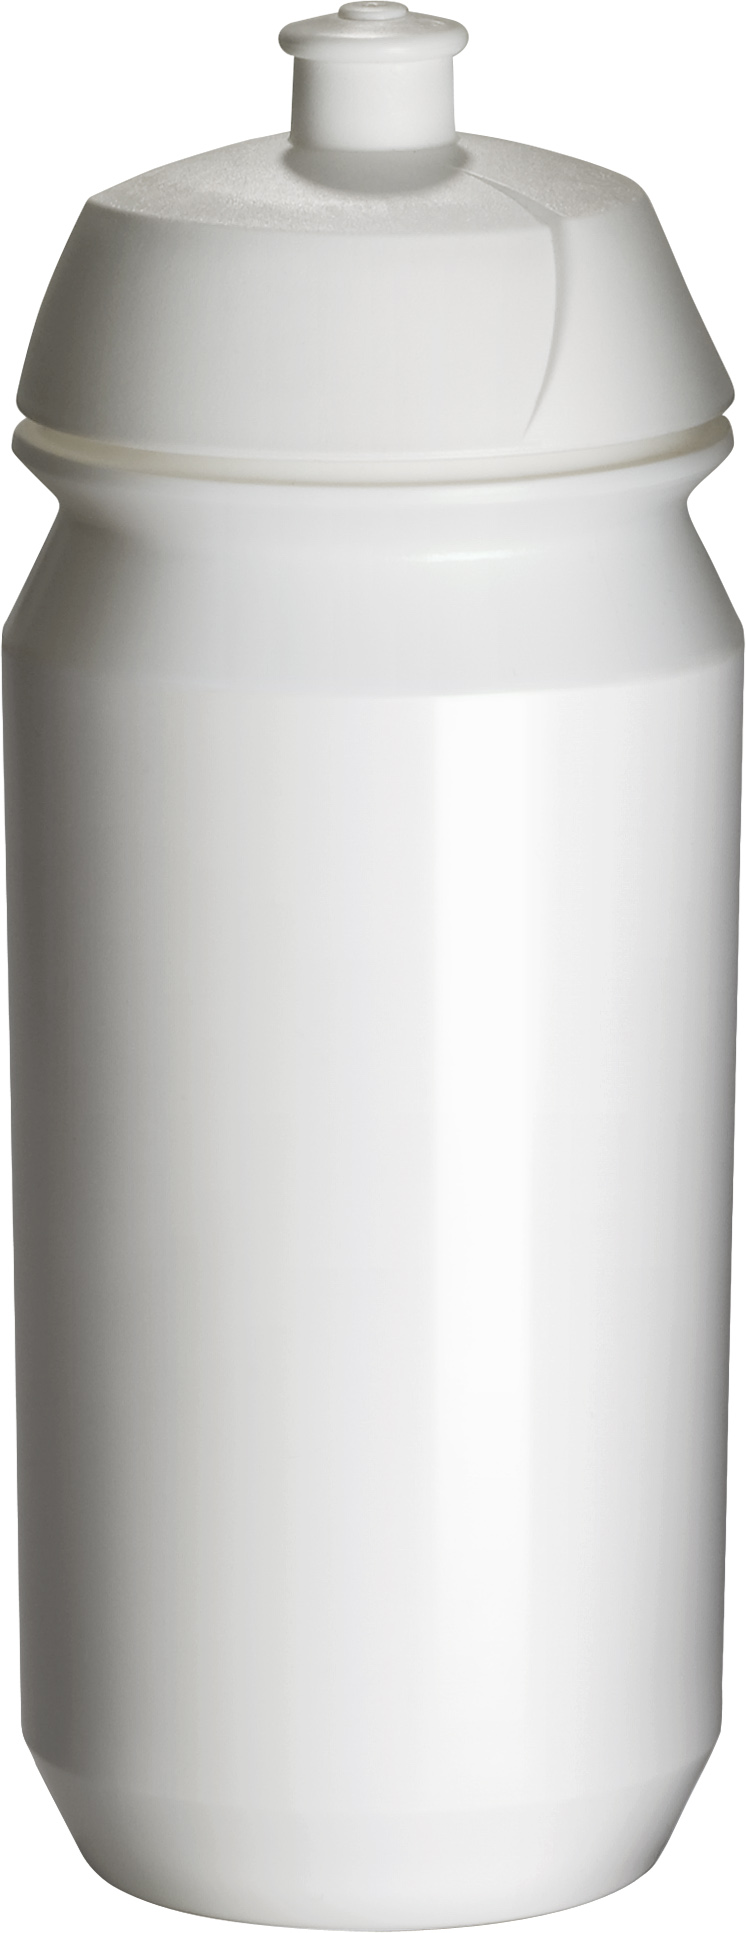 Tacx Shiva 500ml Bottle | Drikkedunke